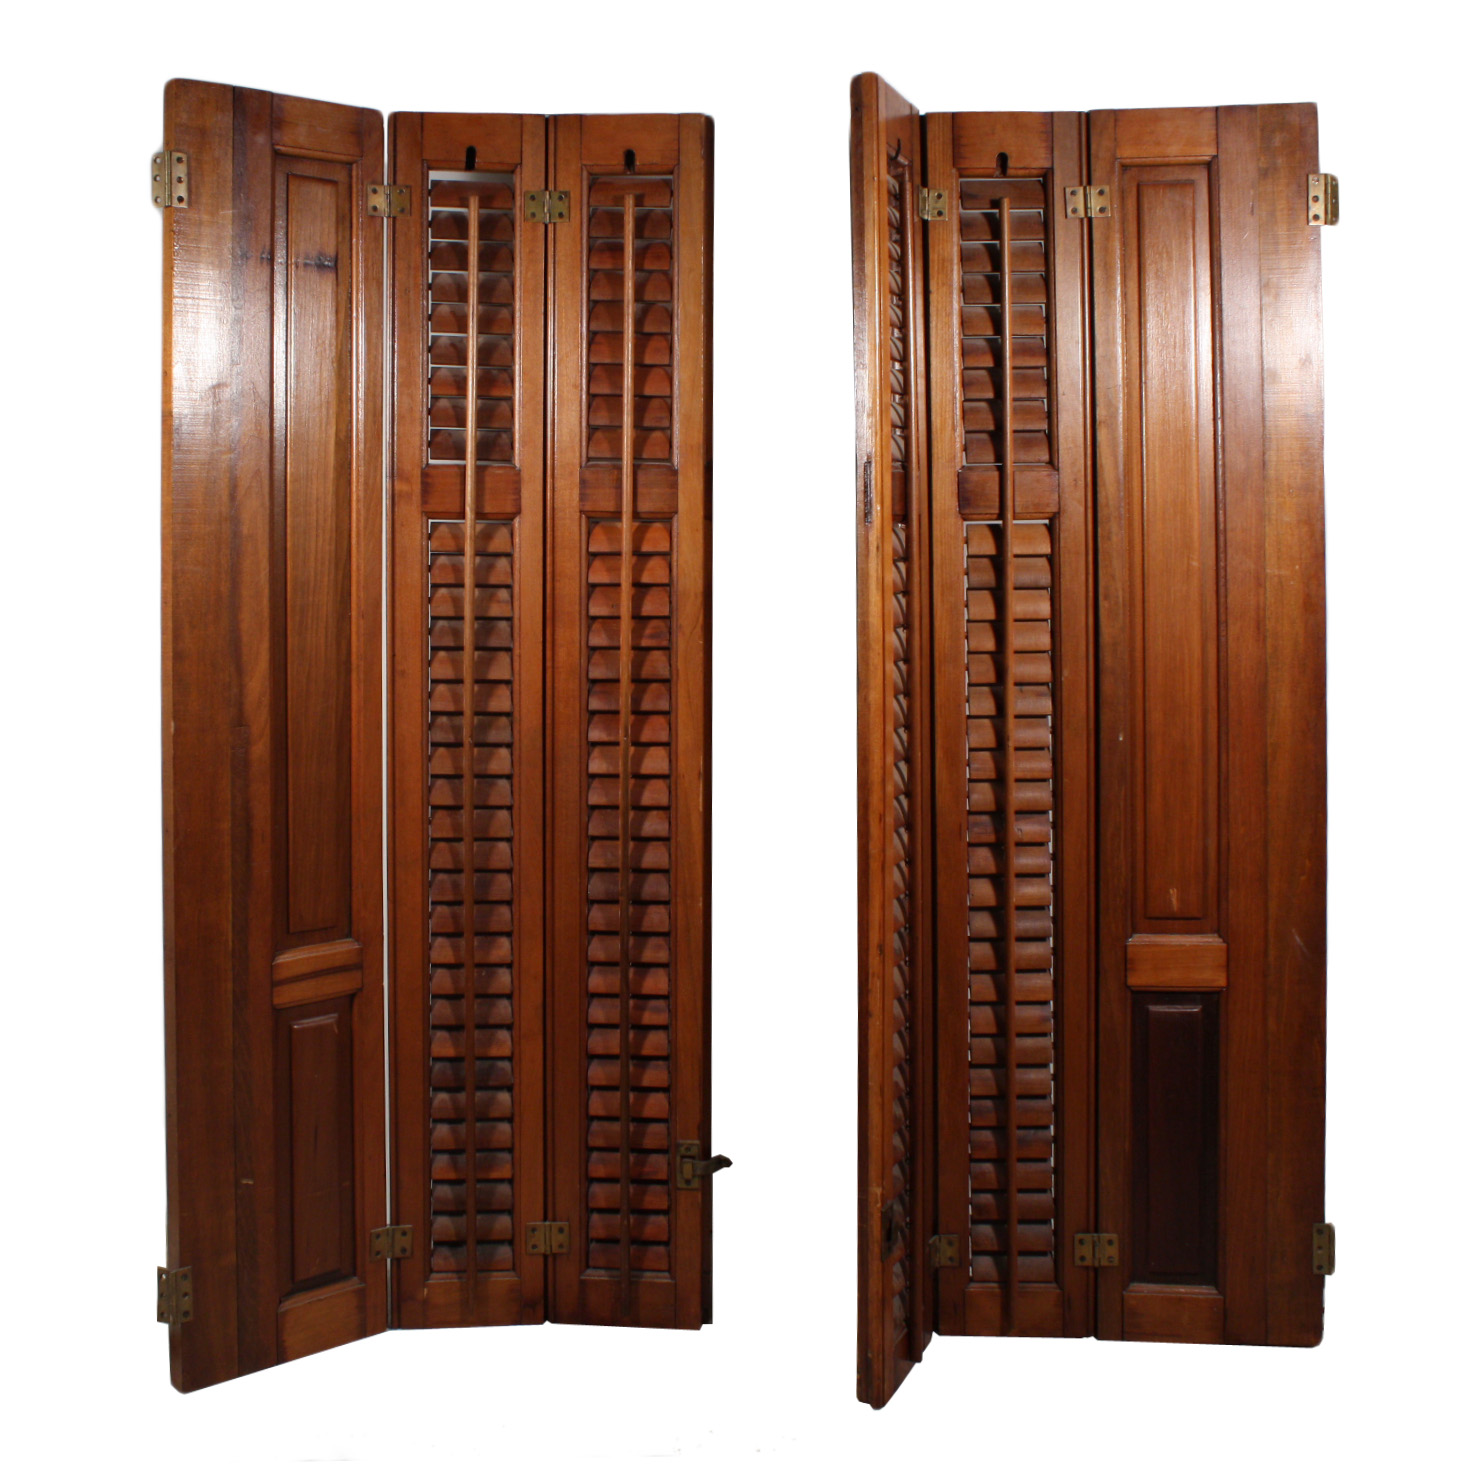 Lovely Antique Interior Wood Shutters Early 1900 S Nshr5 Rw